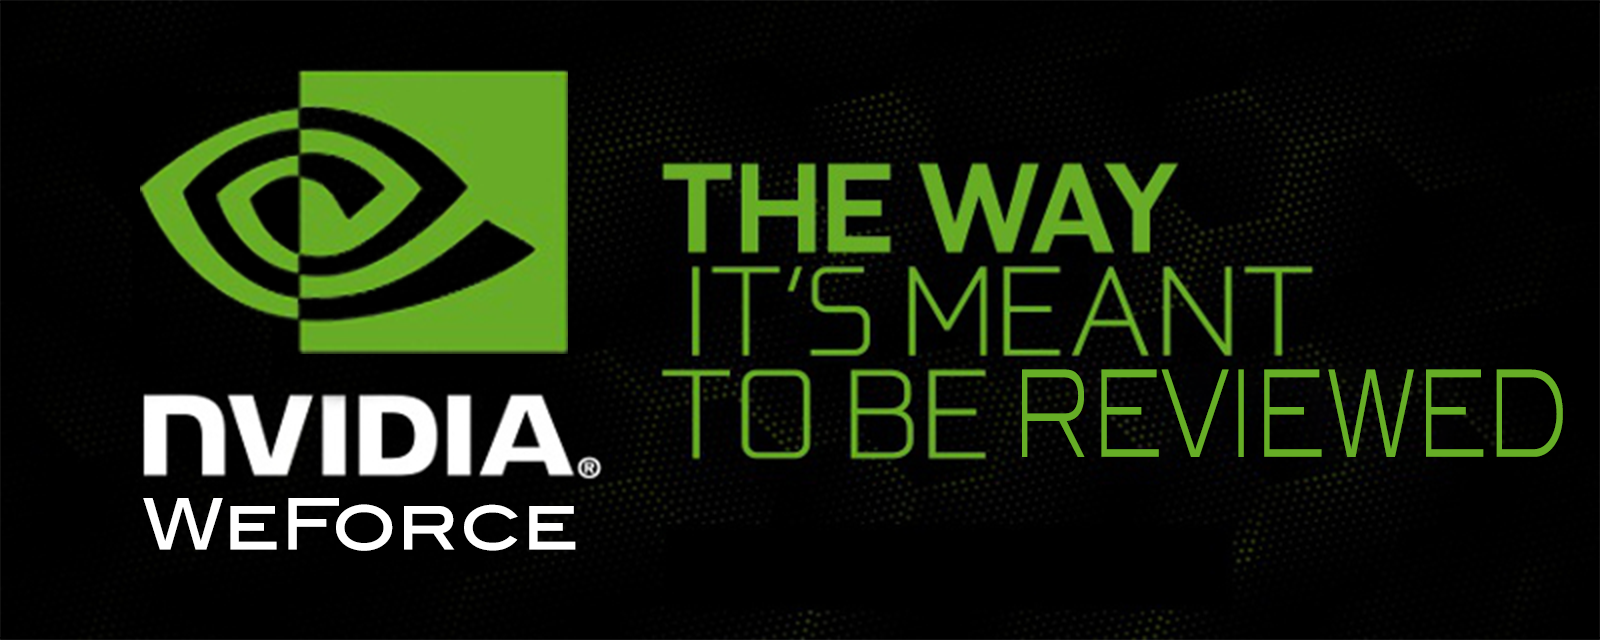 nvidia weforce.png